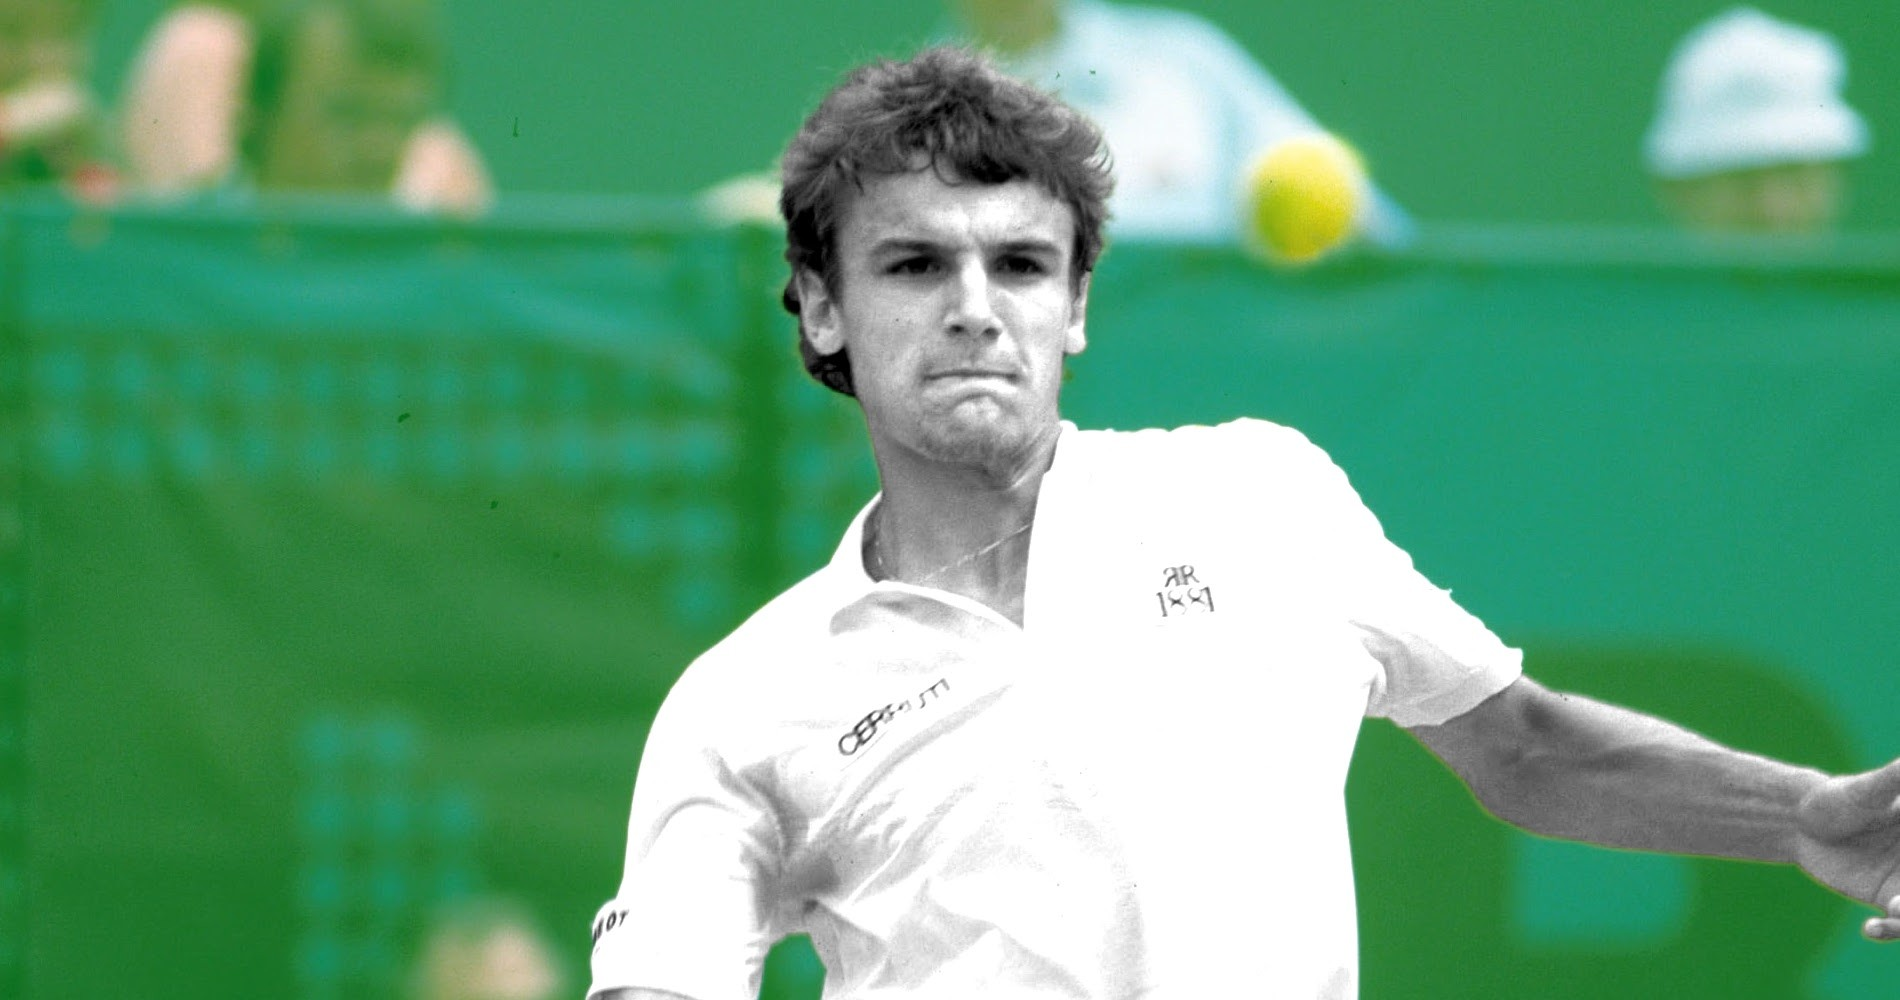 Mats Wilander On this day 11.12.2020